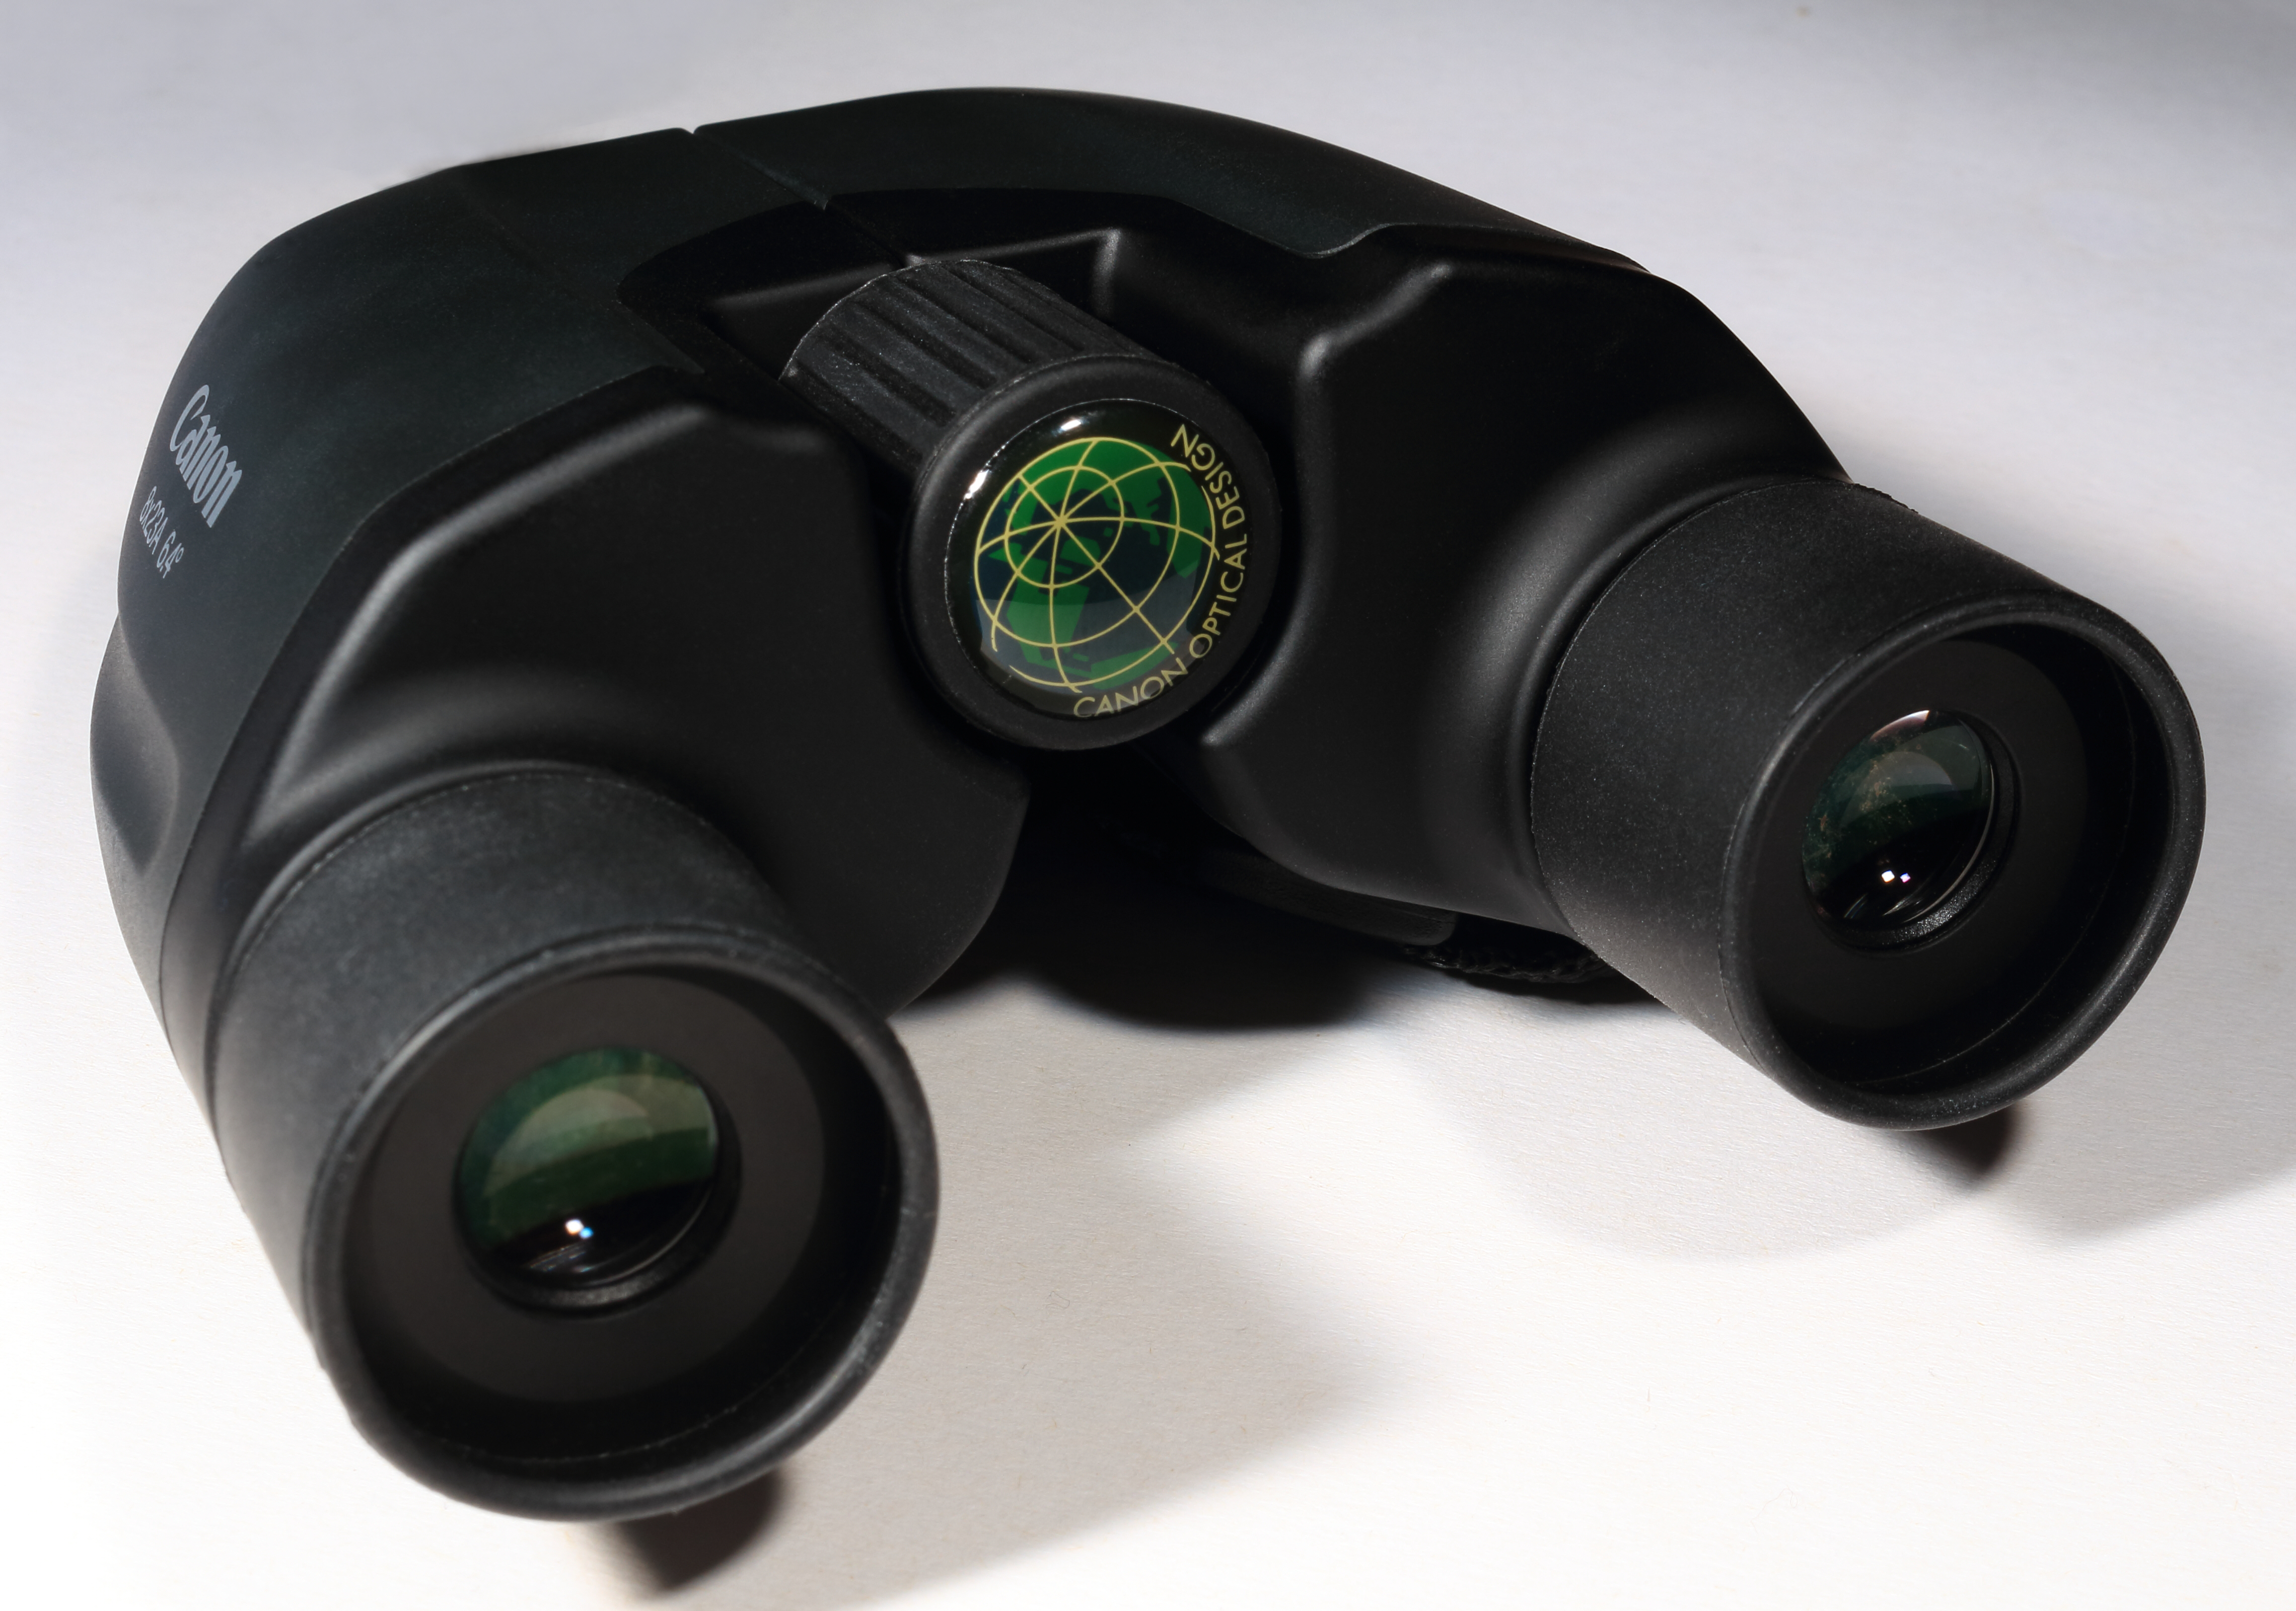 File:canon fernglas 8x23a 9448.jpg wikimedia commons